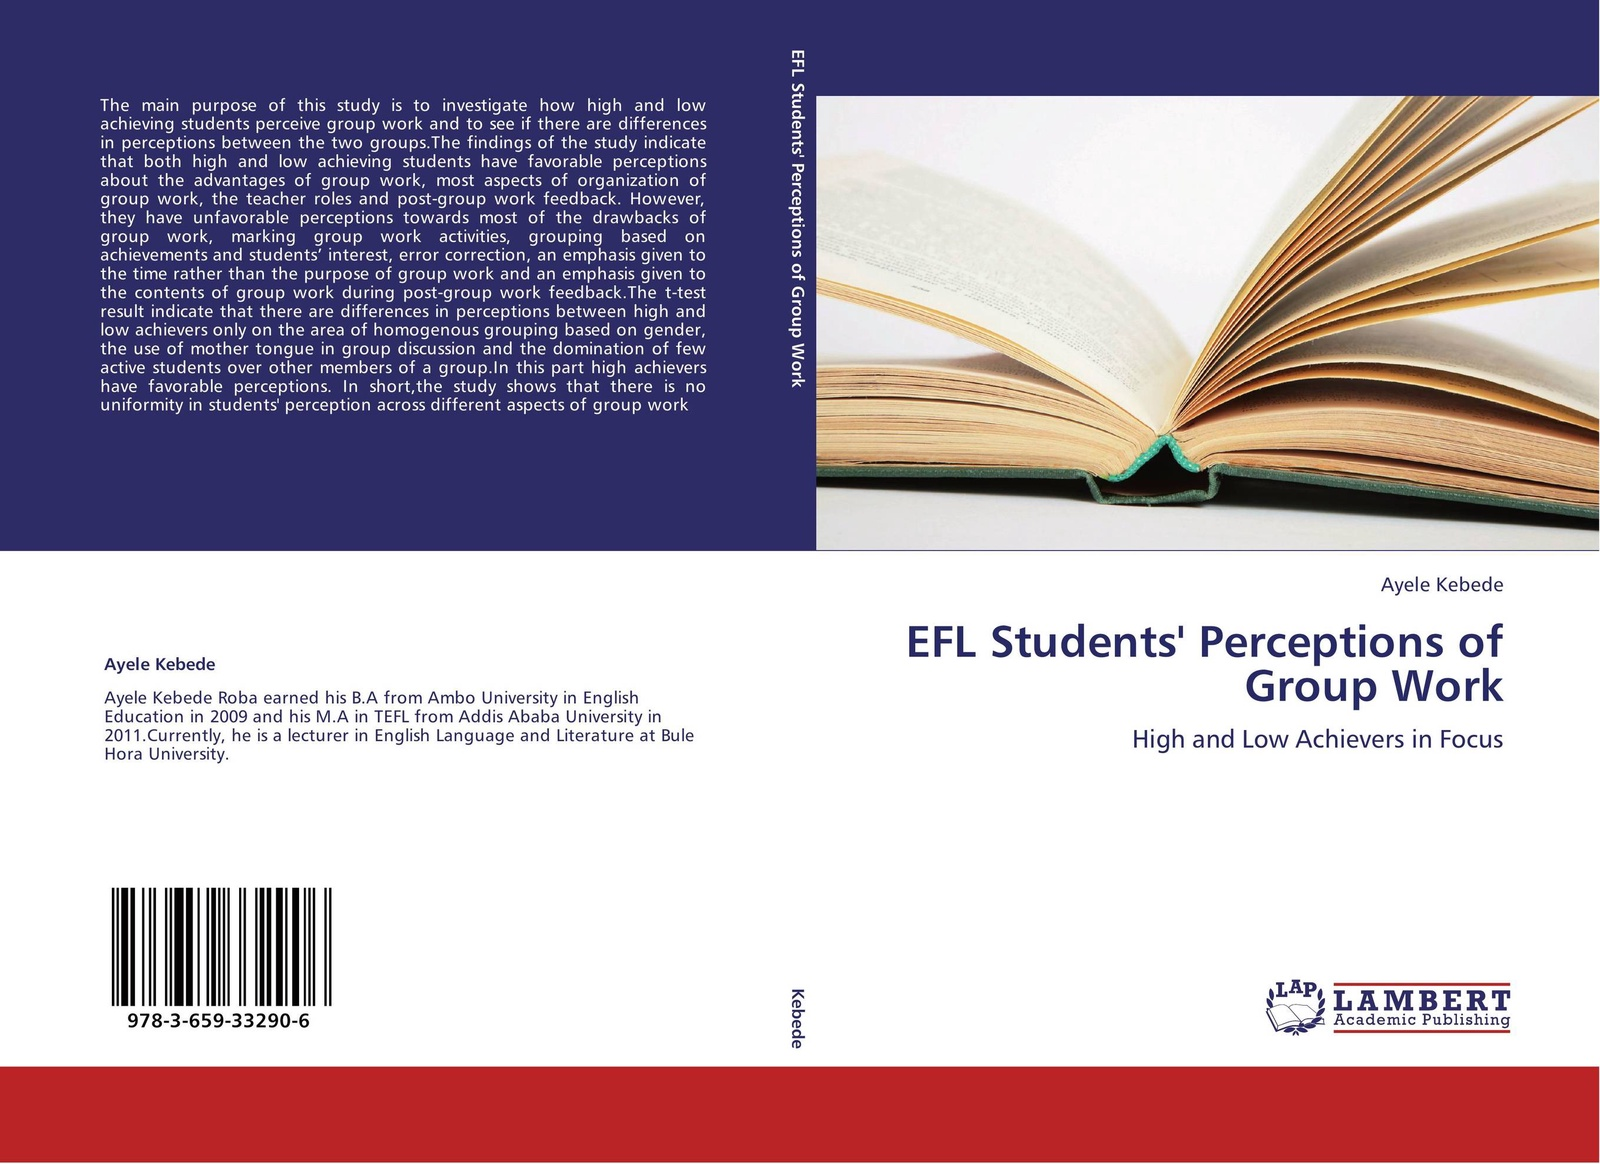 Ayele Kebede EFL Students' Perceptions of Group Work